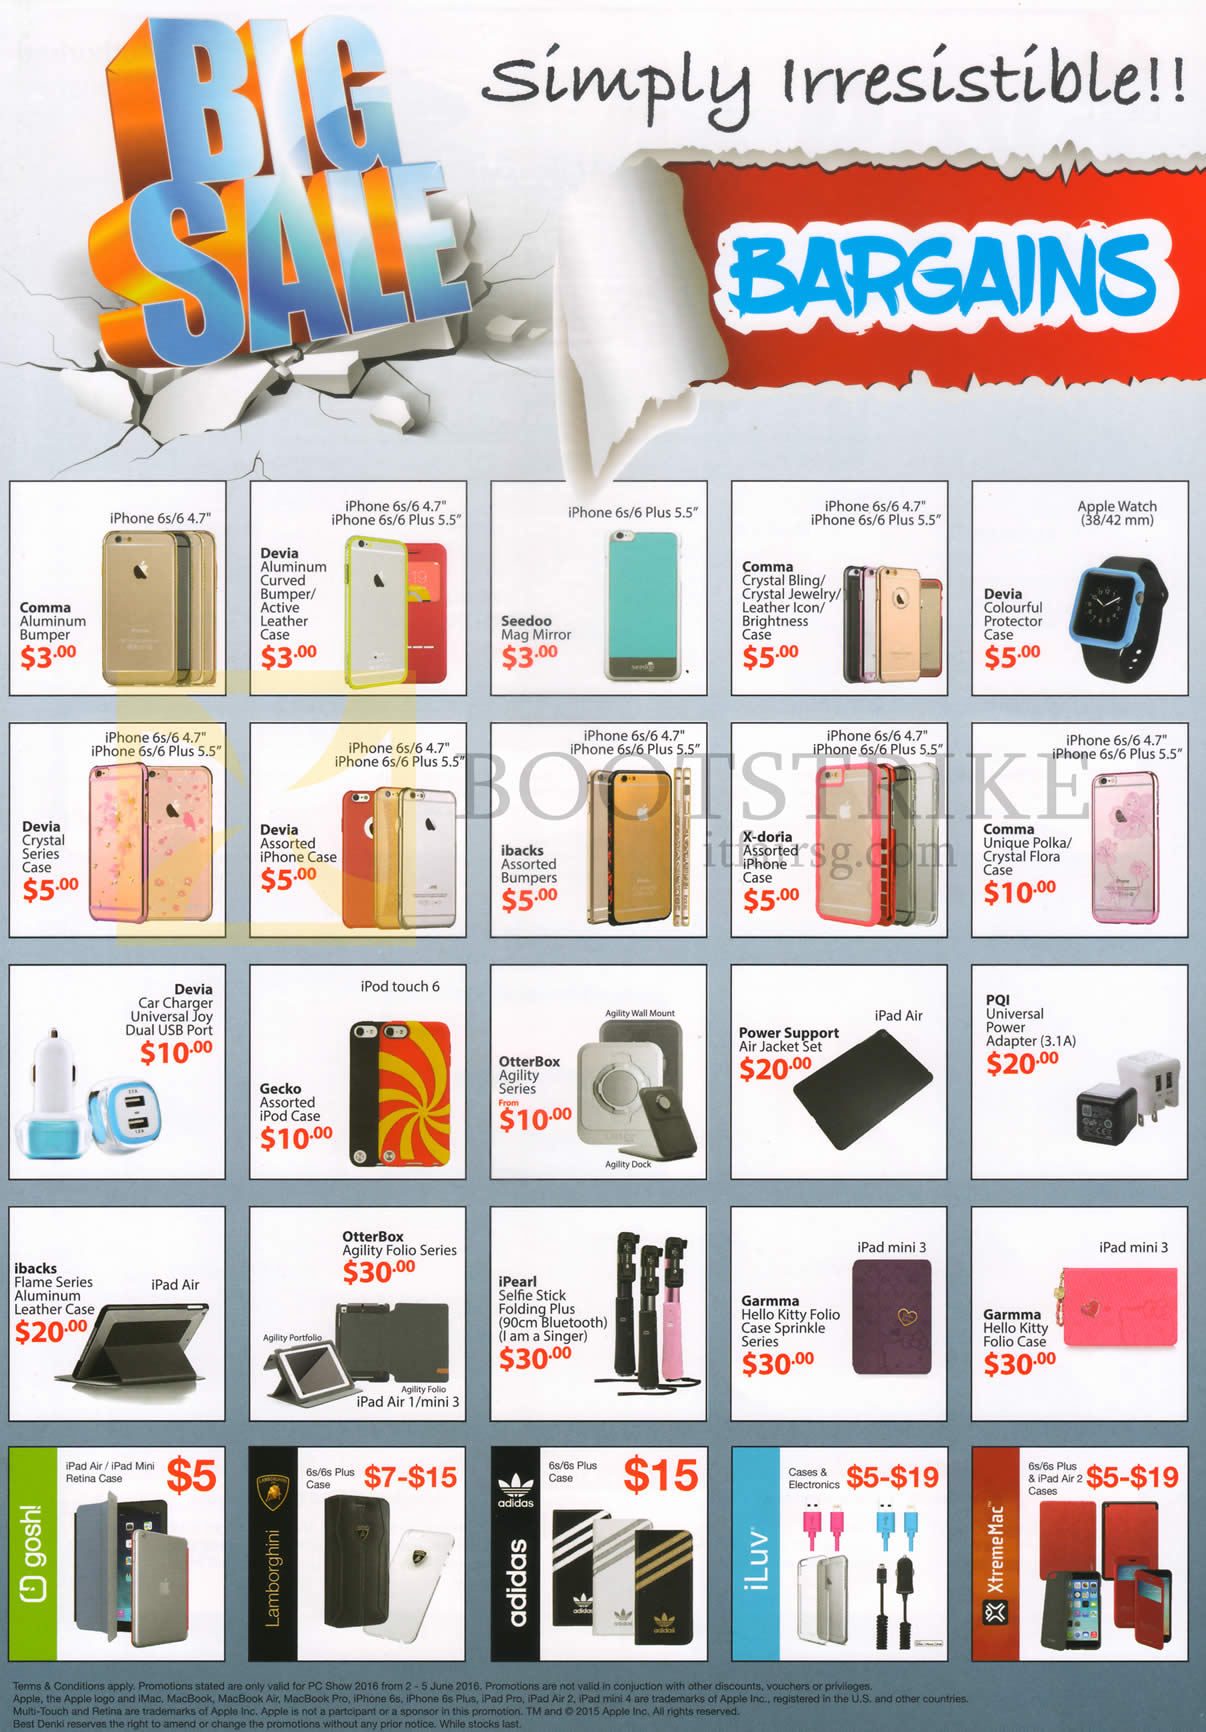 PC SHOW 2016 price list image brochure of Best Denki Mobile Phone Accessories Cases, Universal Power Adapter, Cables, Comma, Devia, Seedoo, X-doria